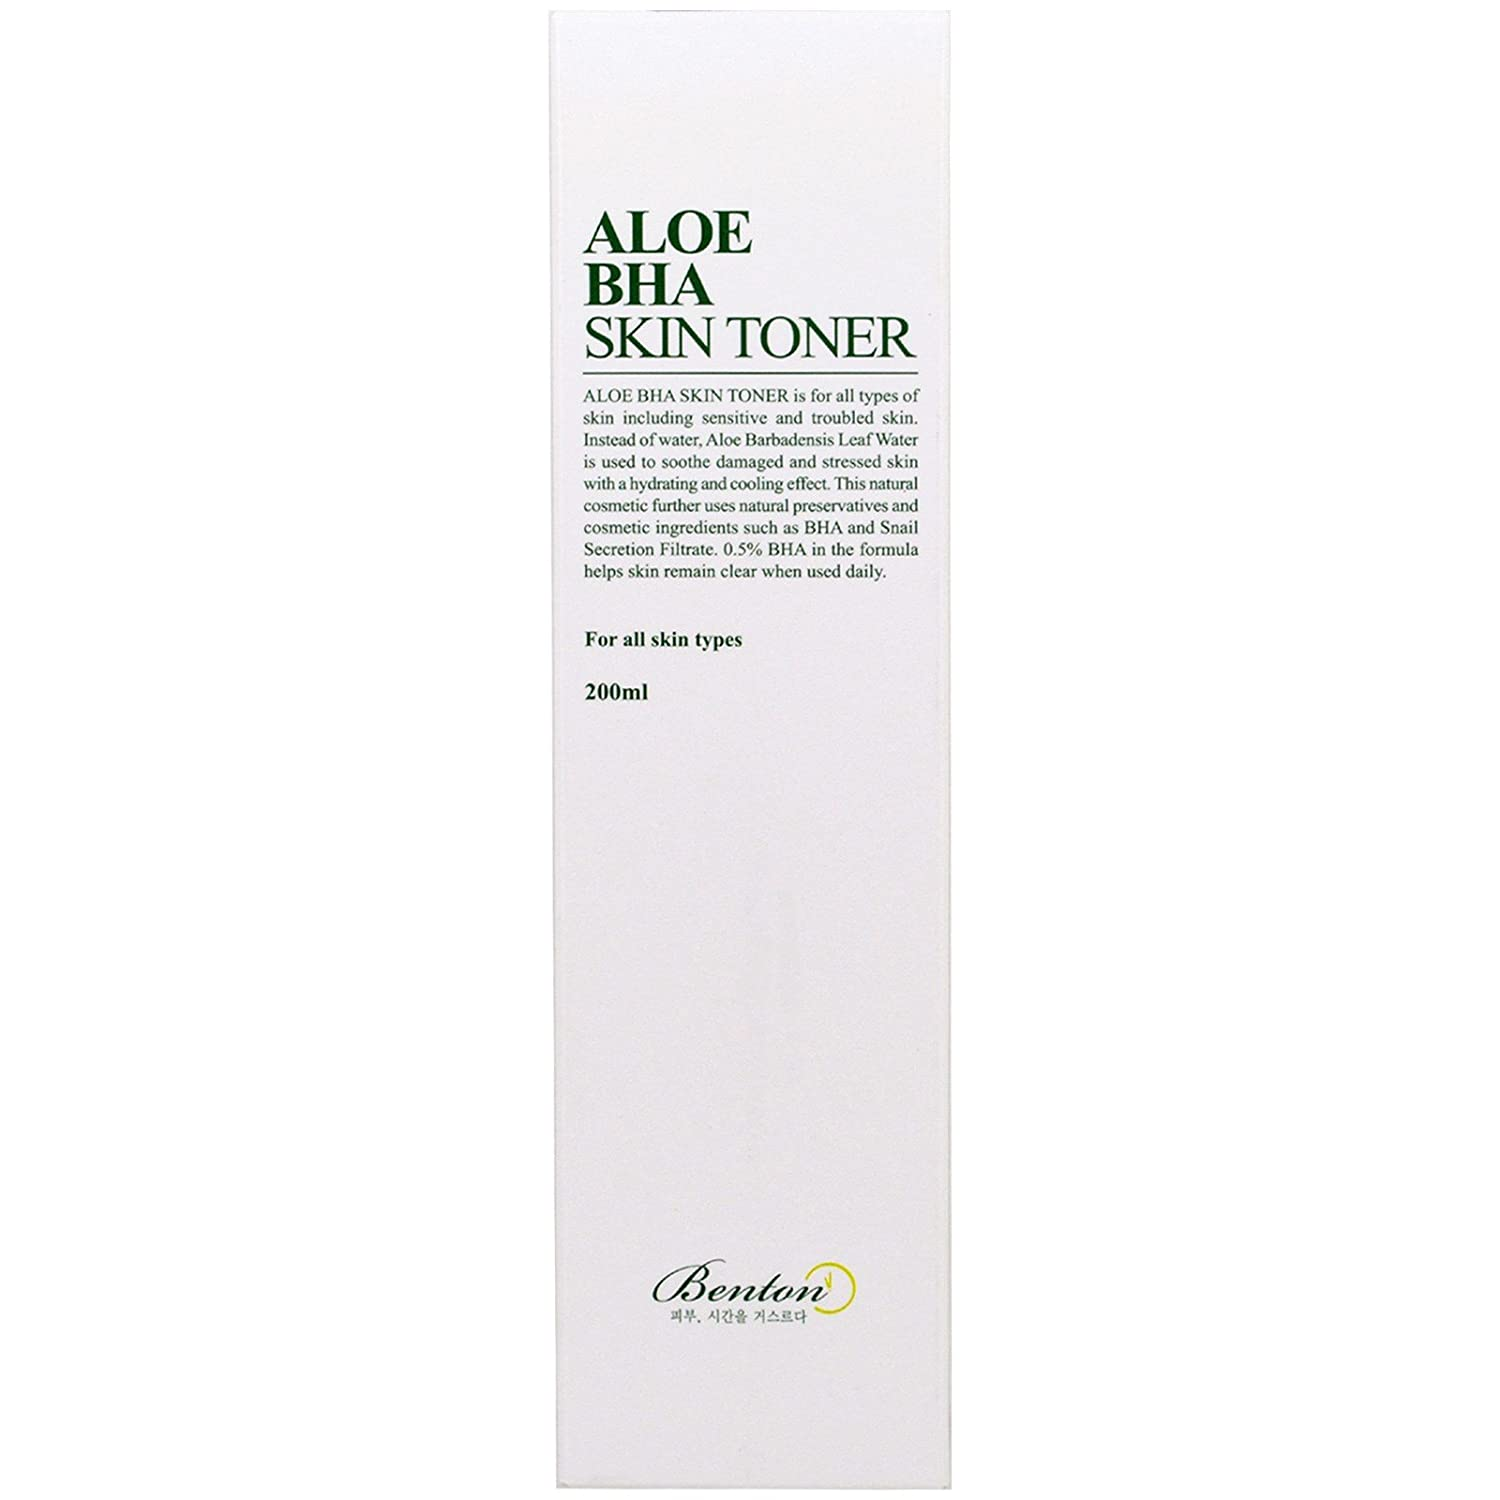 Benton Aloe BHA Skin Toner, 6.7 Ounce Mainspring America Inc. DBA Direct Cosmetics B00GAOBG3A